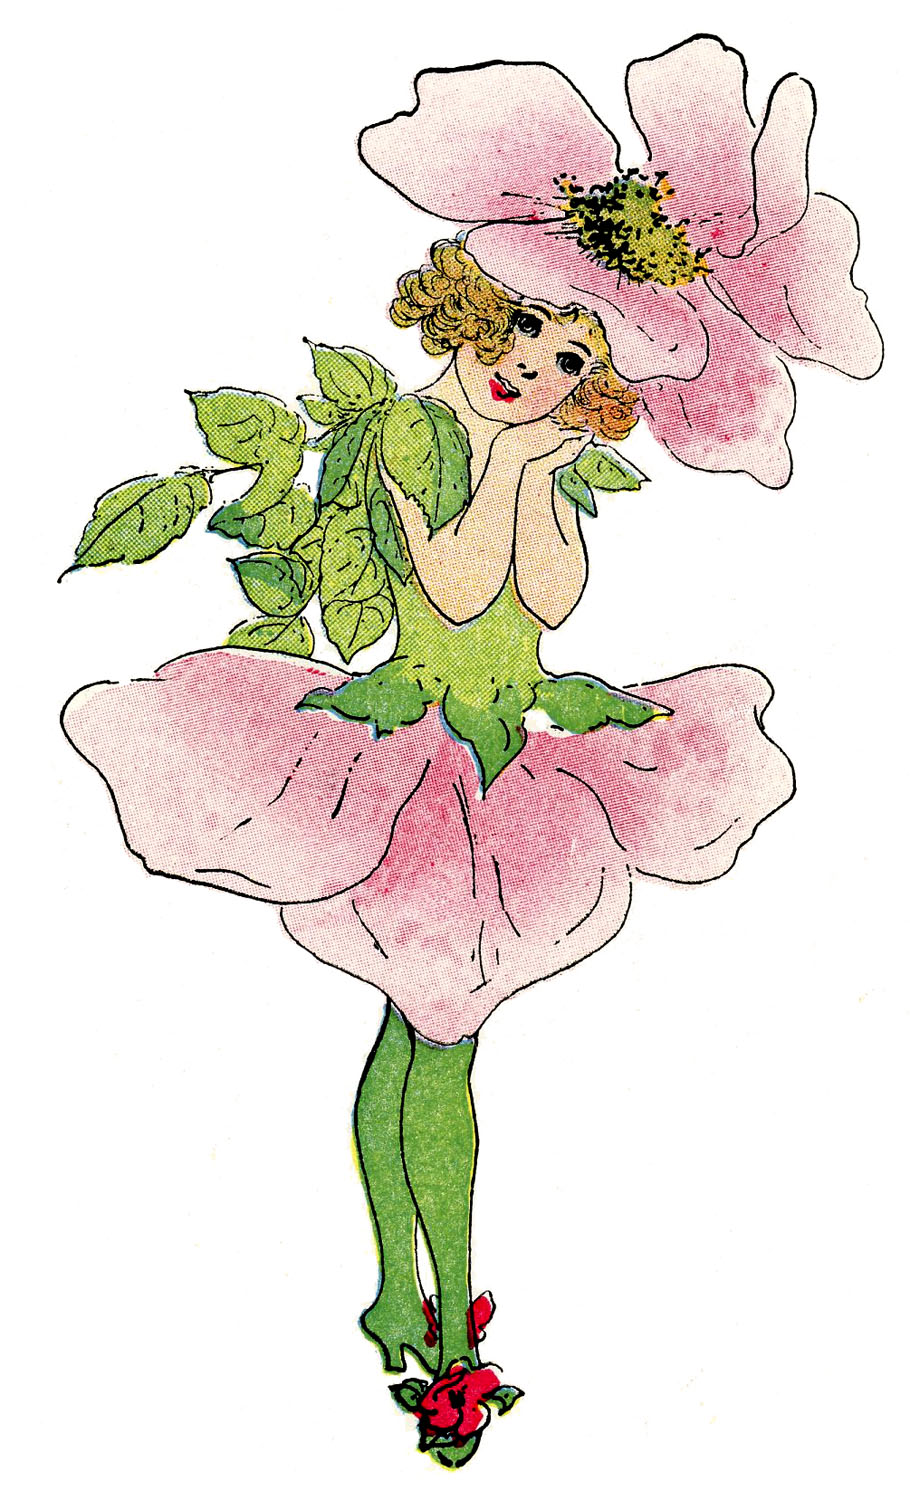 vintage fairy image rose flower girl the graphics fairy